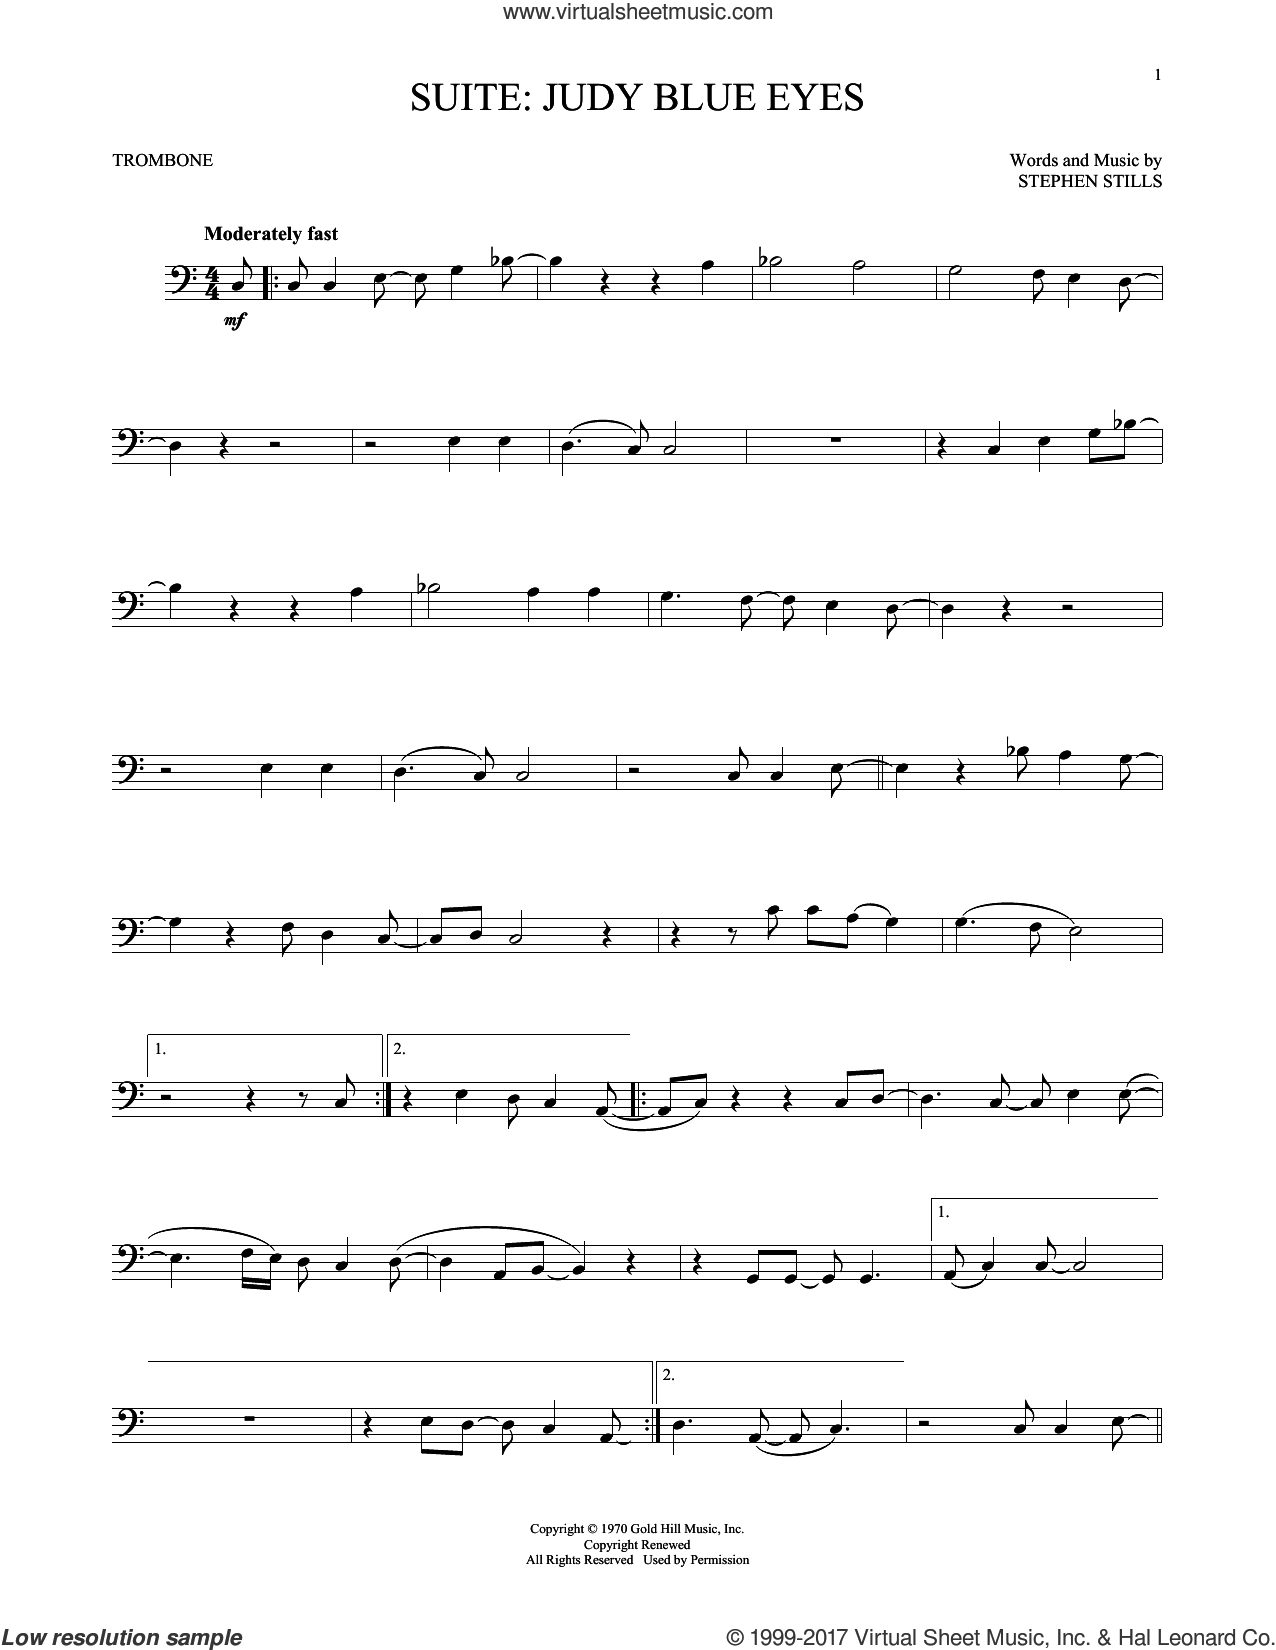 Suite: Judy Blue Eyes sheet music for trombone solo by Crosby, Stills & Nash and Stephen Stills, intermediate skill level